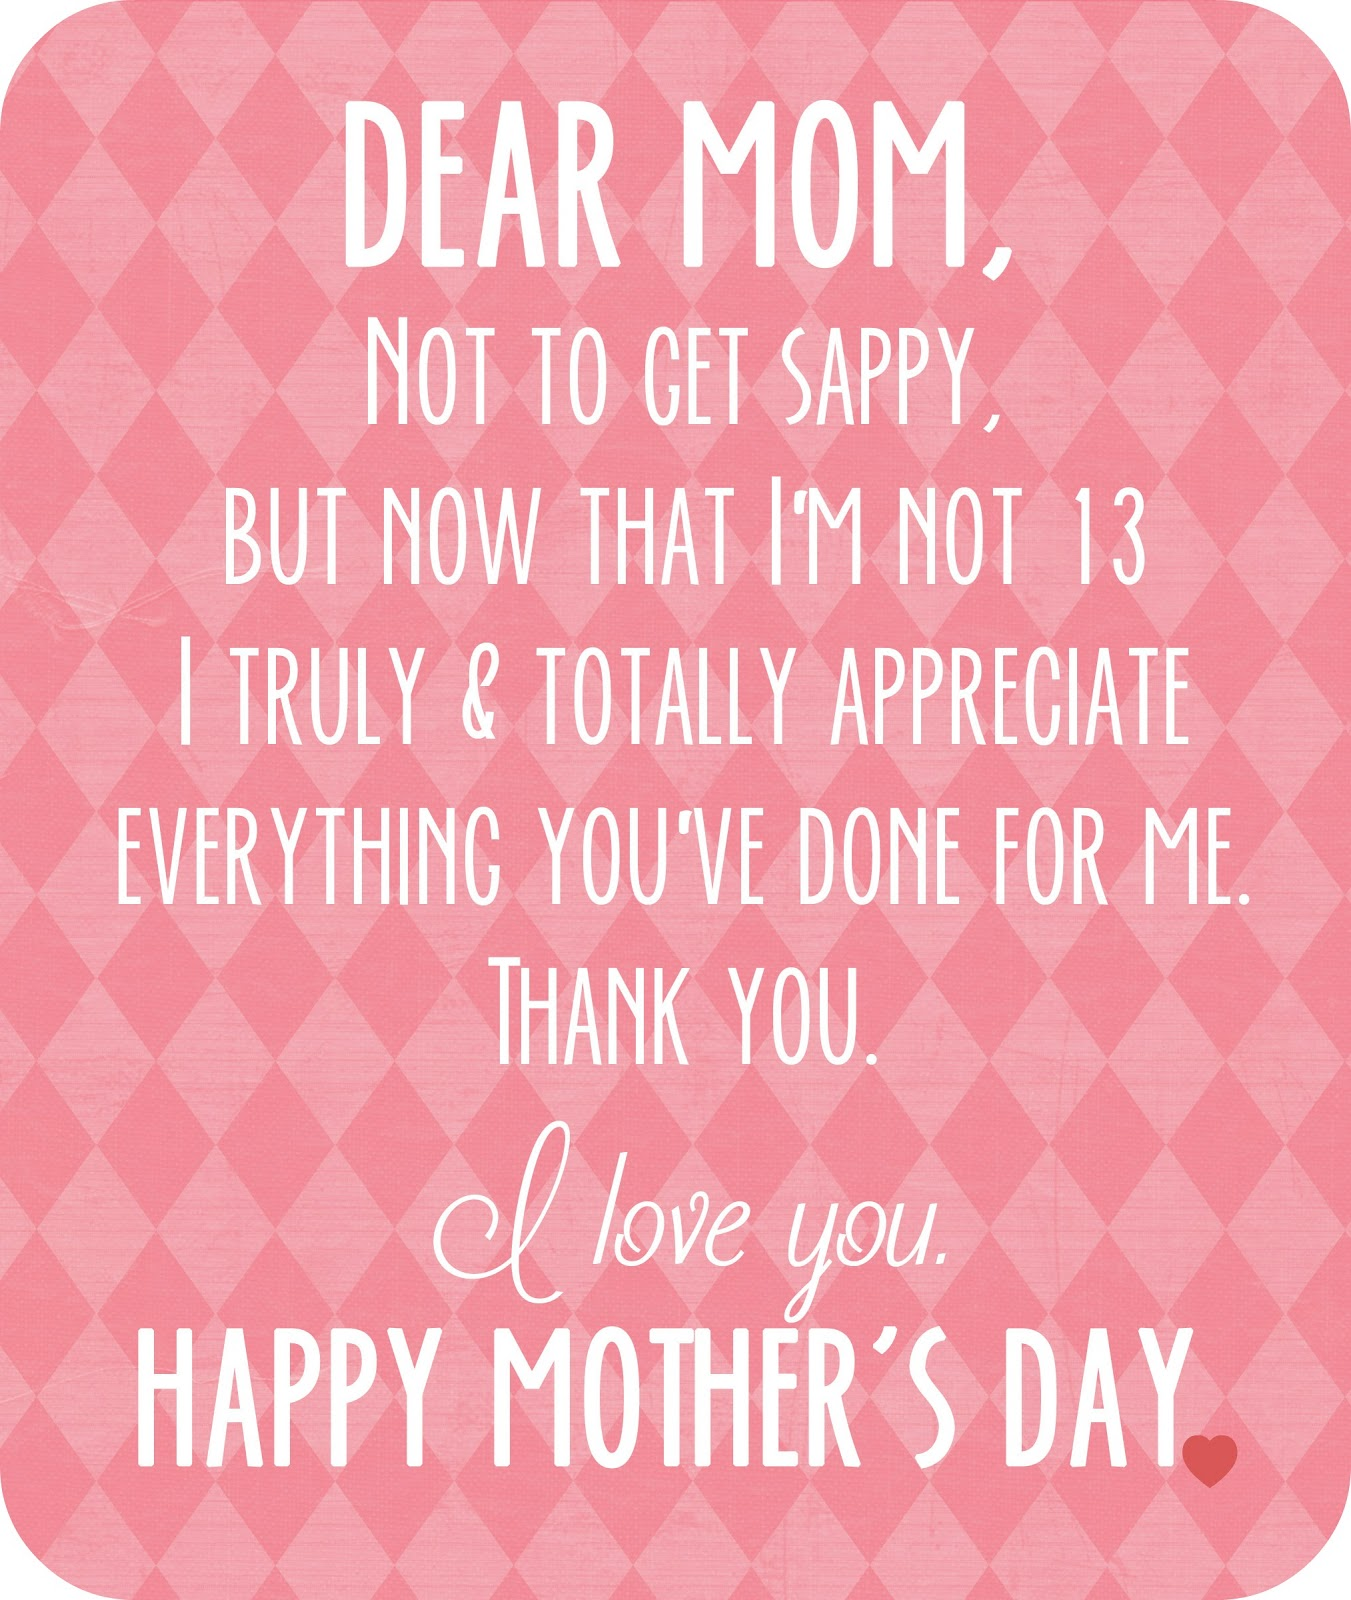 crazyloucreations.blog...crazylou: Happy Mothers Day! {Free Printable